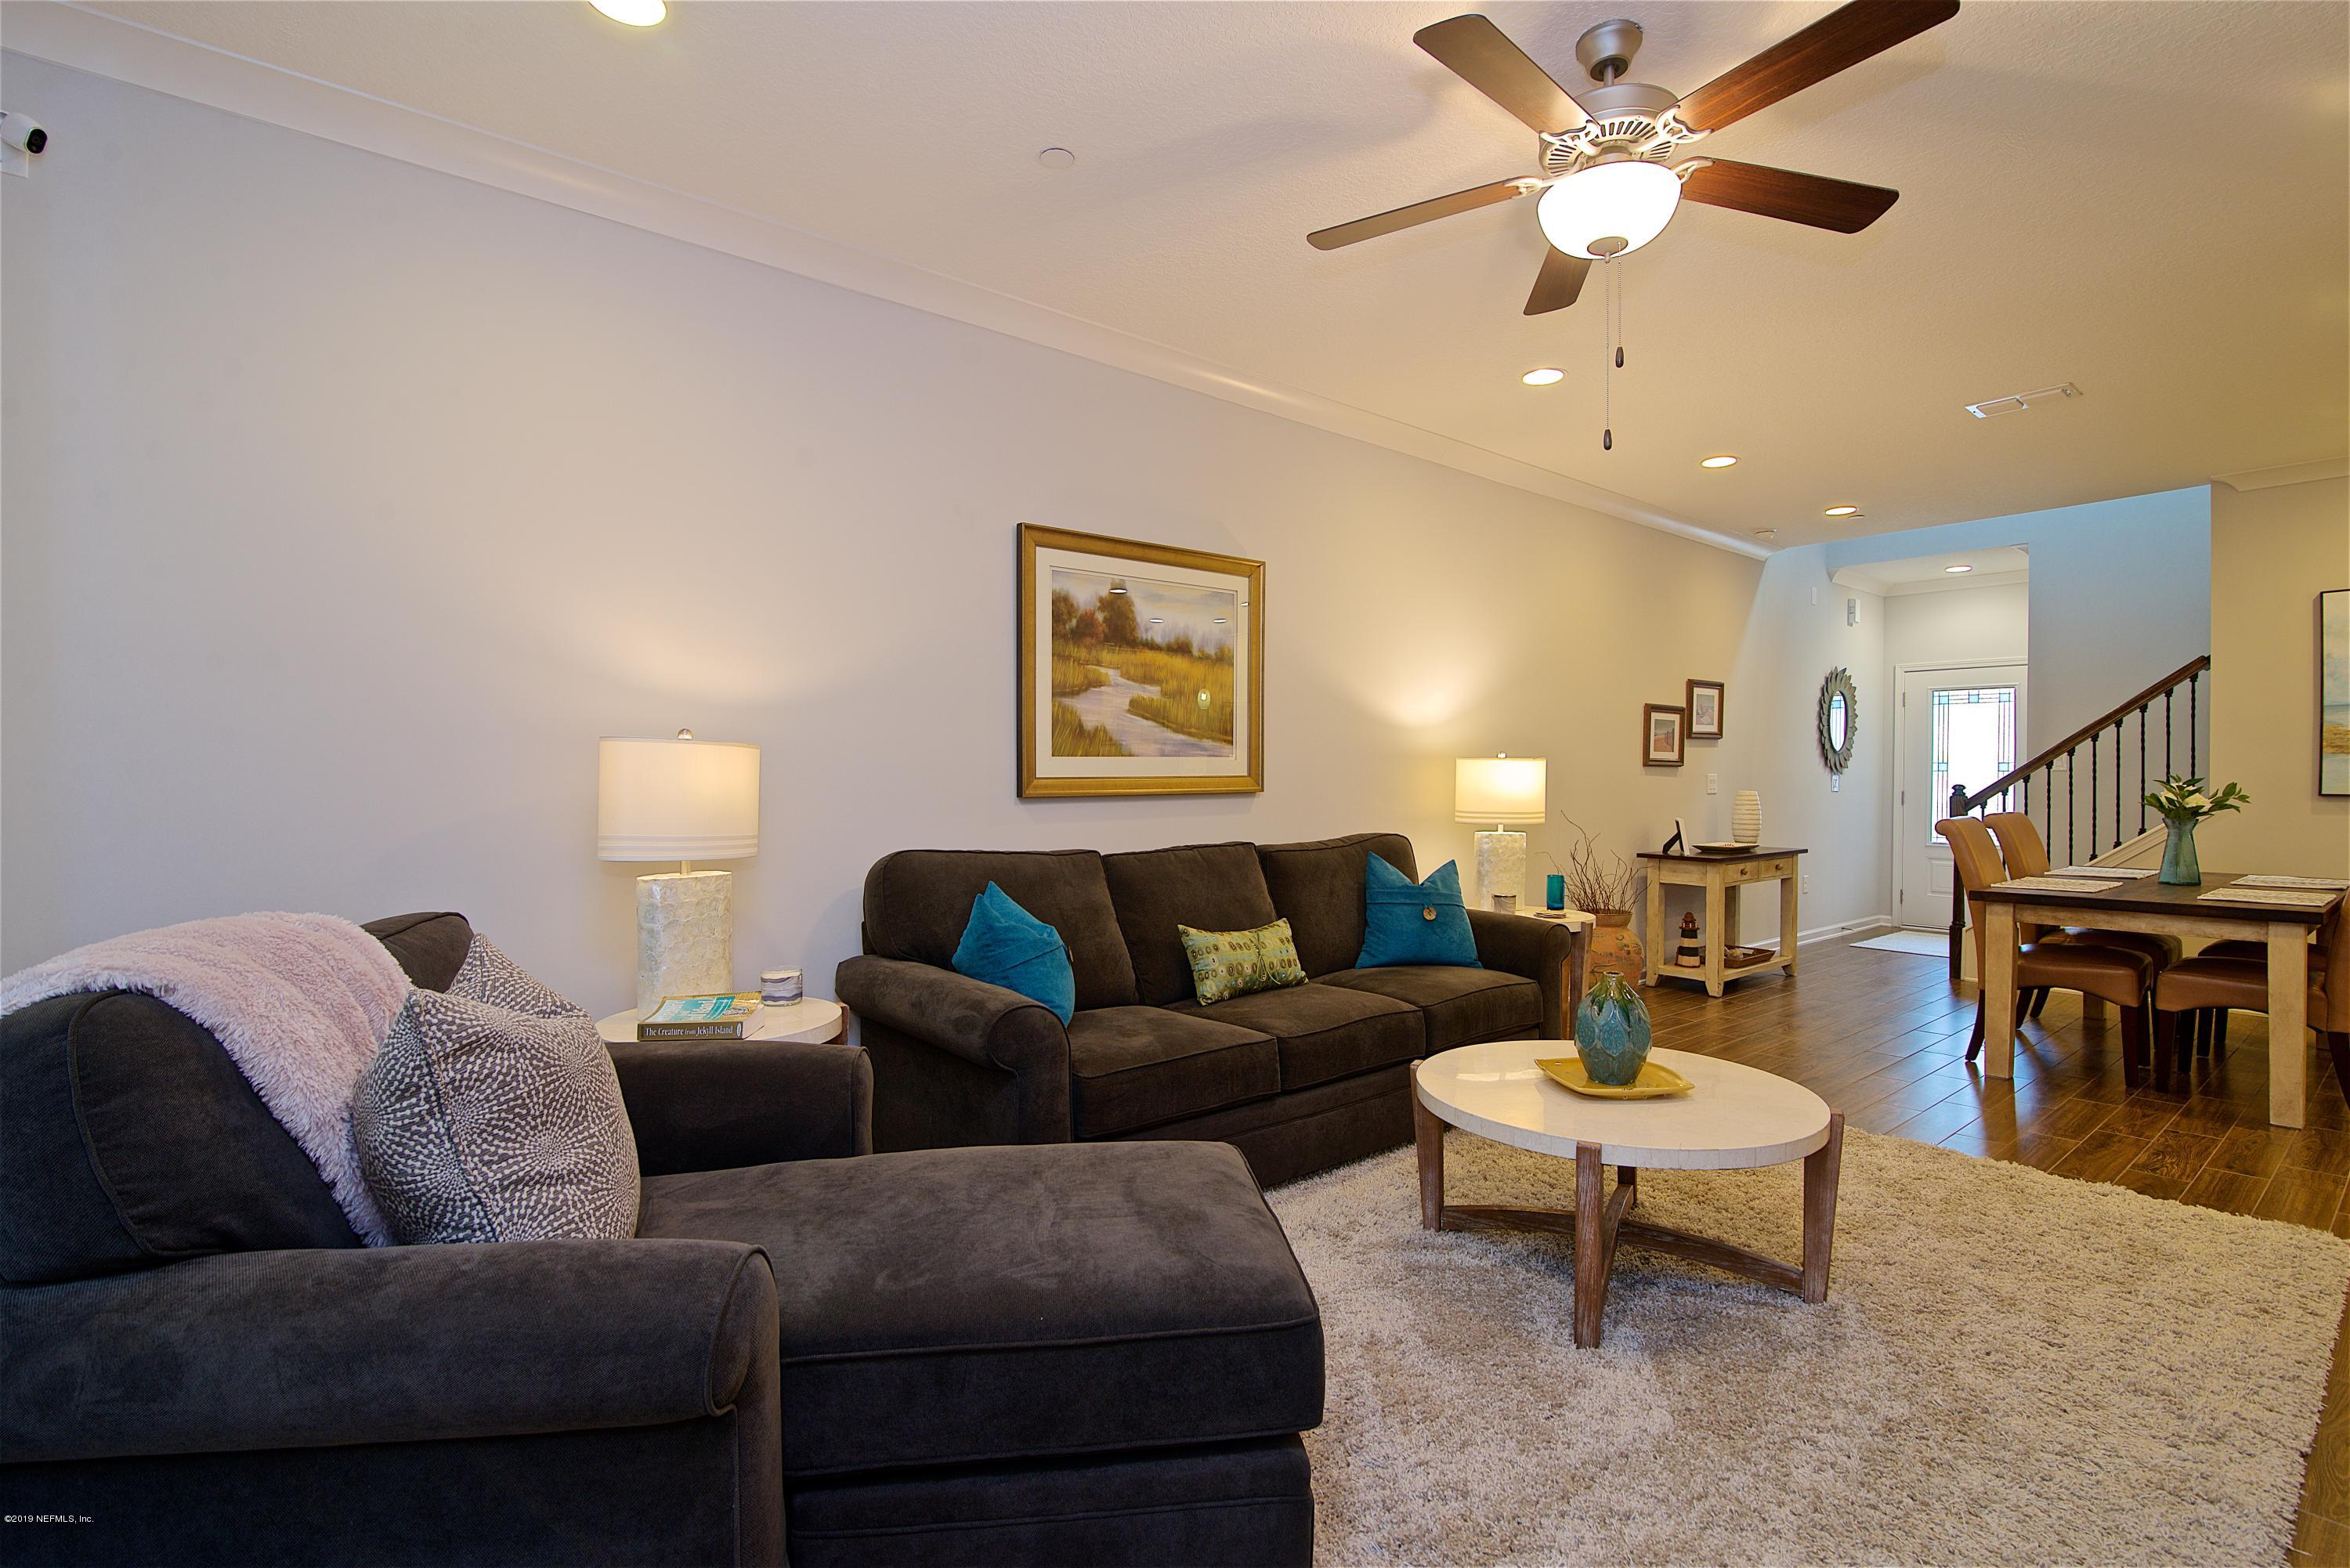 488 COCONUT PALM, PONTE VEDRA, FLORIDA 32081, 3 Bedrooms Bedrooms, ,2 BathroomsBathrooms,Residential - townhome,For sale,COCONUT PALM,981769